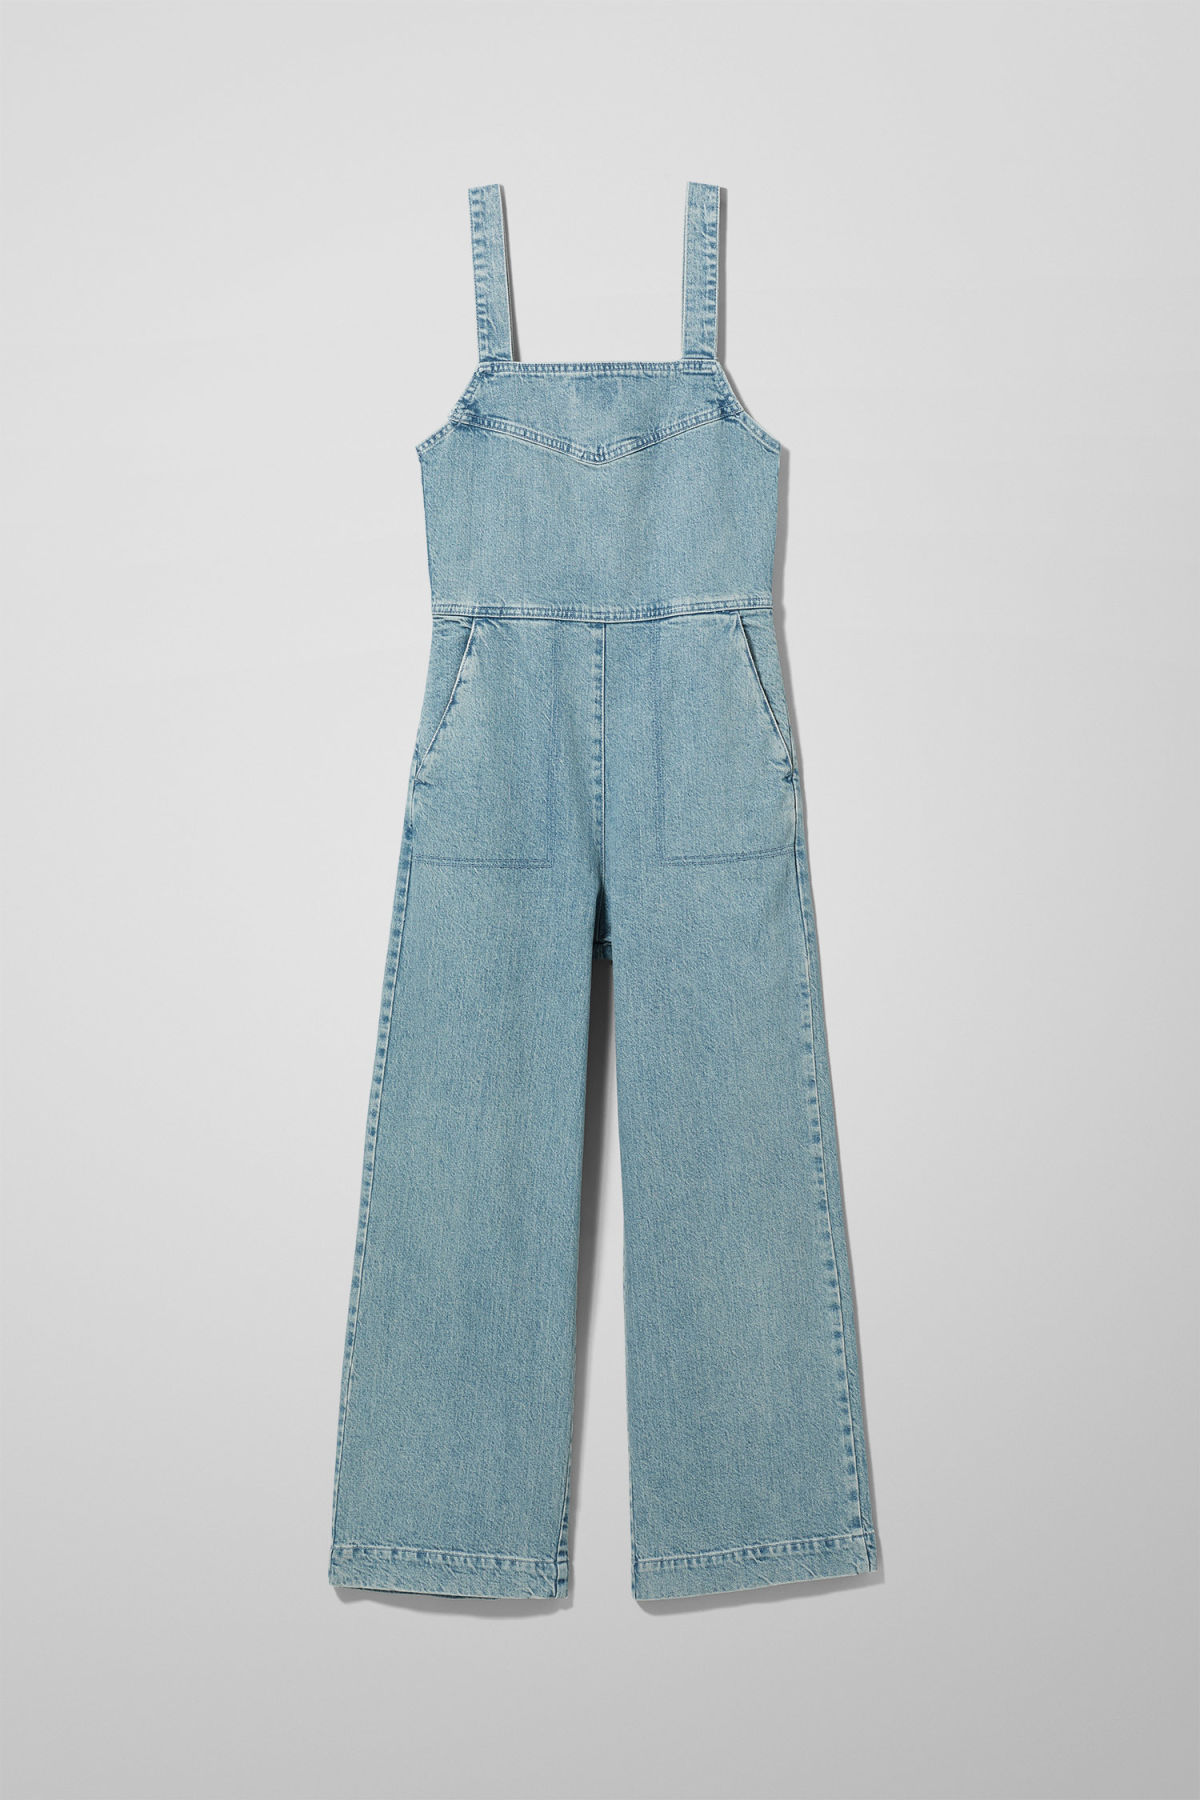 browse latest collections Clearance sale get new Junip Seven Blue Denim Jumpsuit - Blue - Dresses & Jumpsuits - Weekday